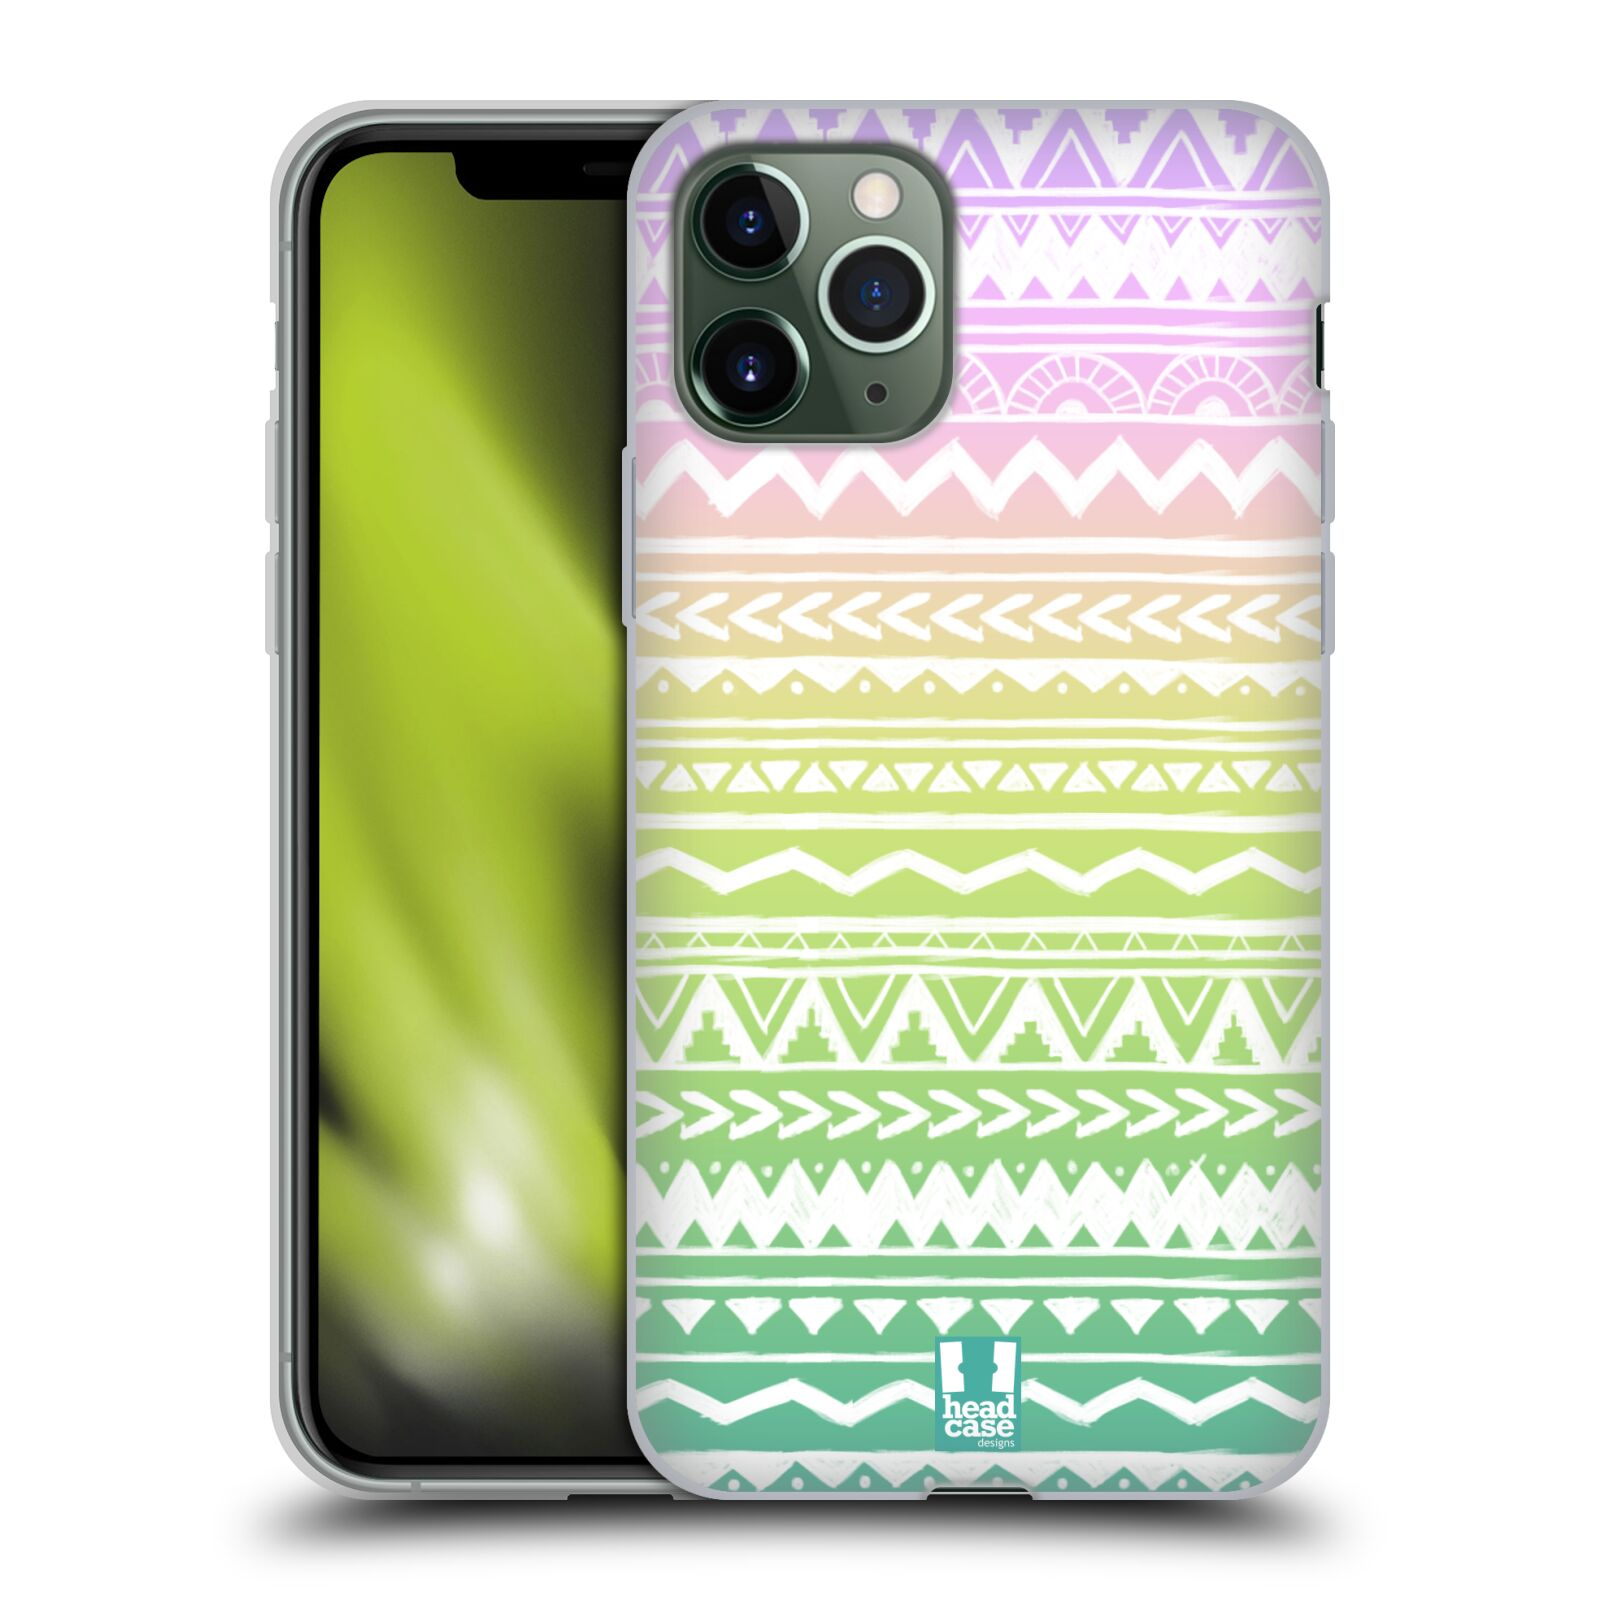 alza obaly iphone 6 plus , Silikonové pouzdro na mobil Apple iPhone 11 Pro - Head Case - MIX AZTEC DRAWN